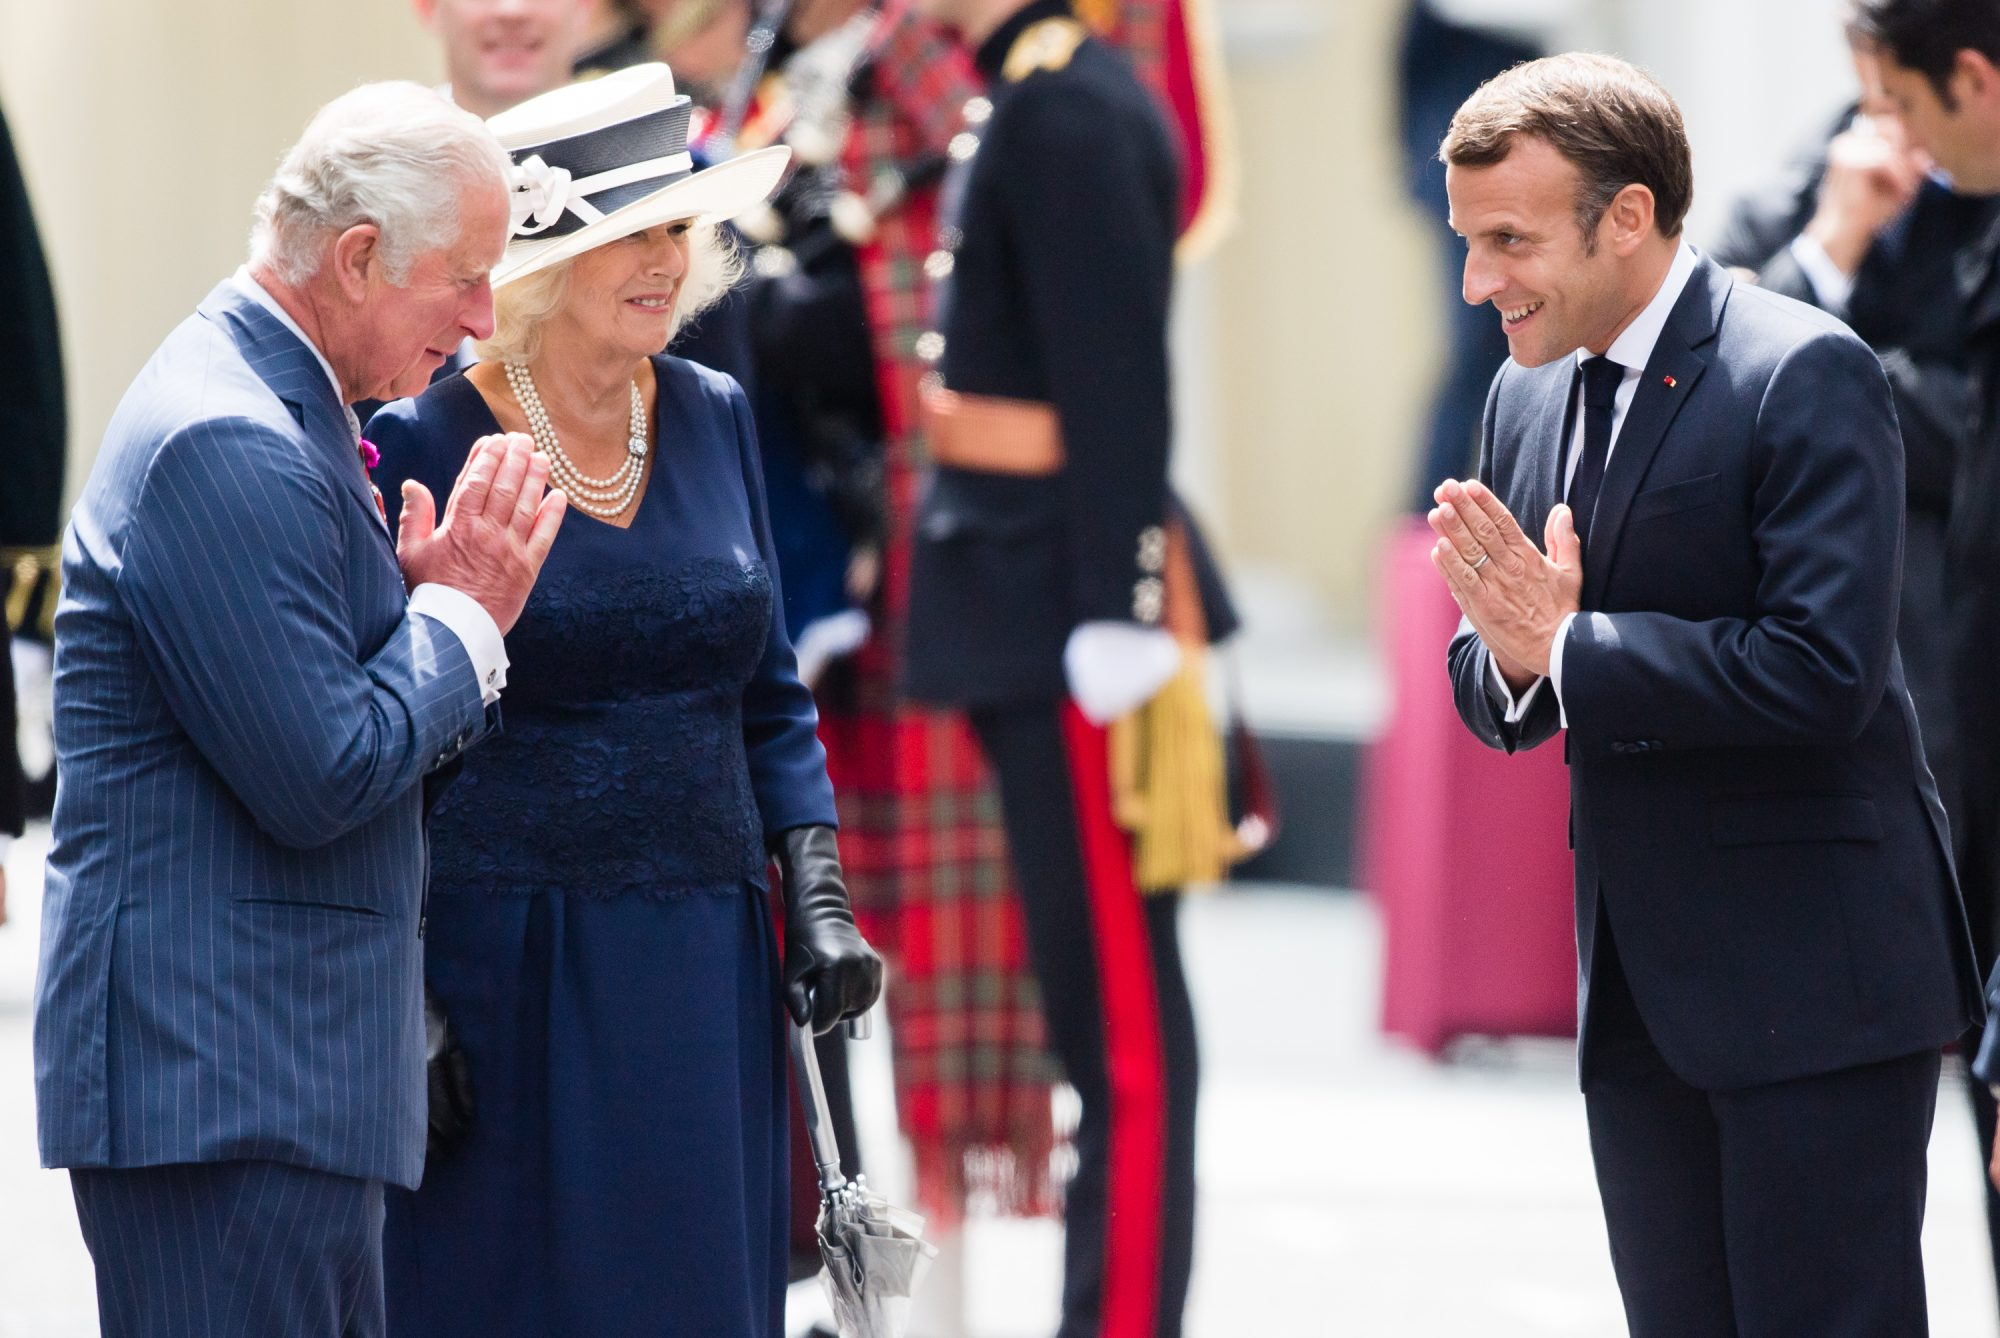 The Prince Of Wales And The Duchess of Cornwall Receive President Macron To Commemorate The Appeal of The 18th June Speech By Charles De Gaulle